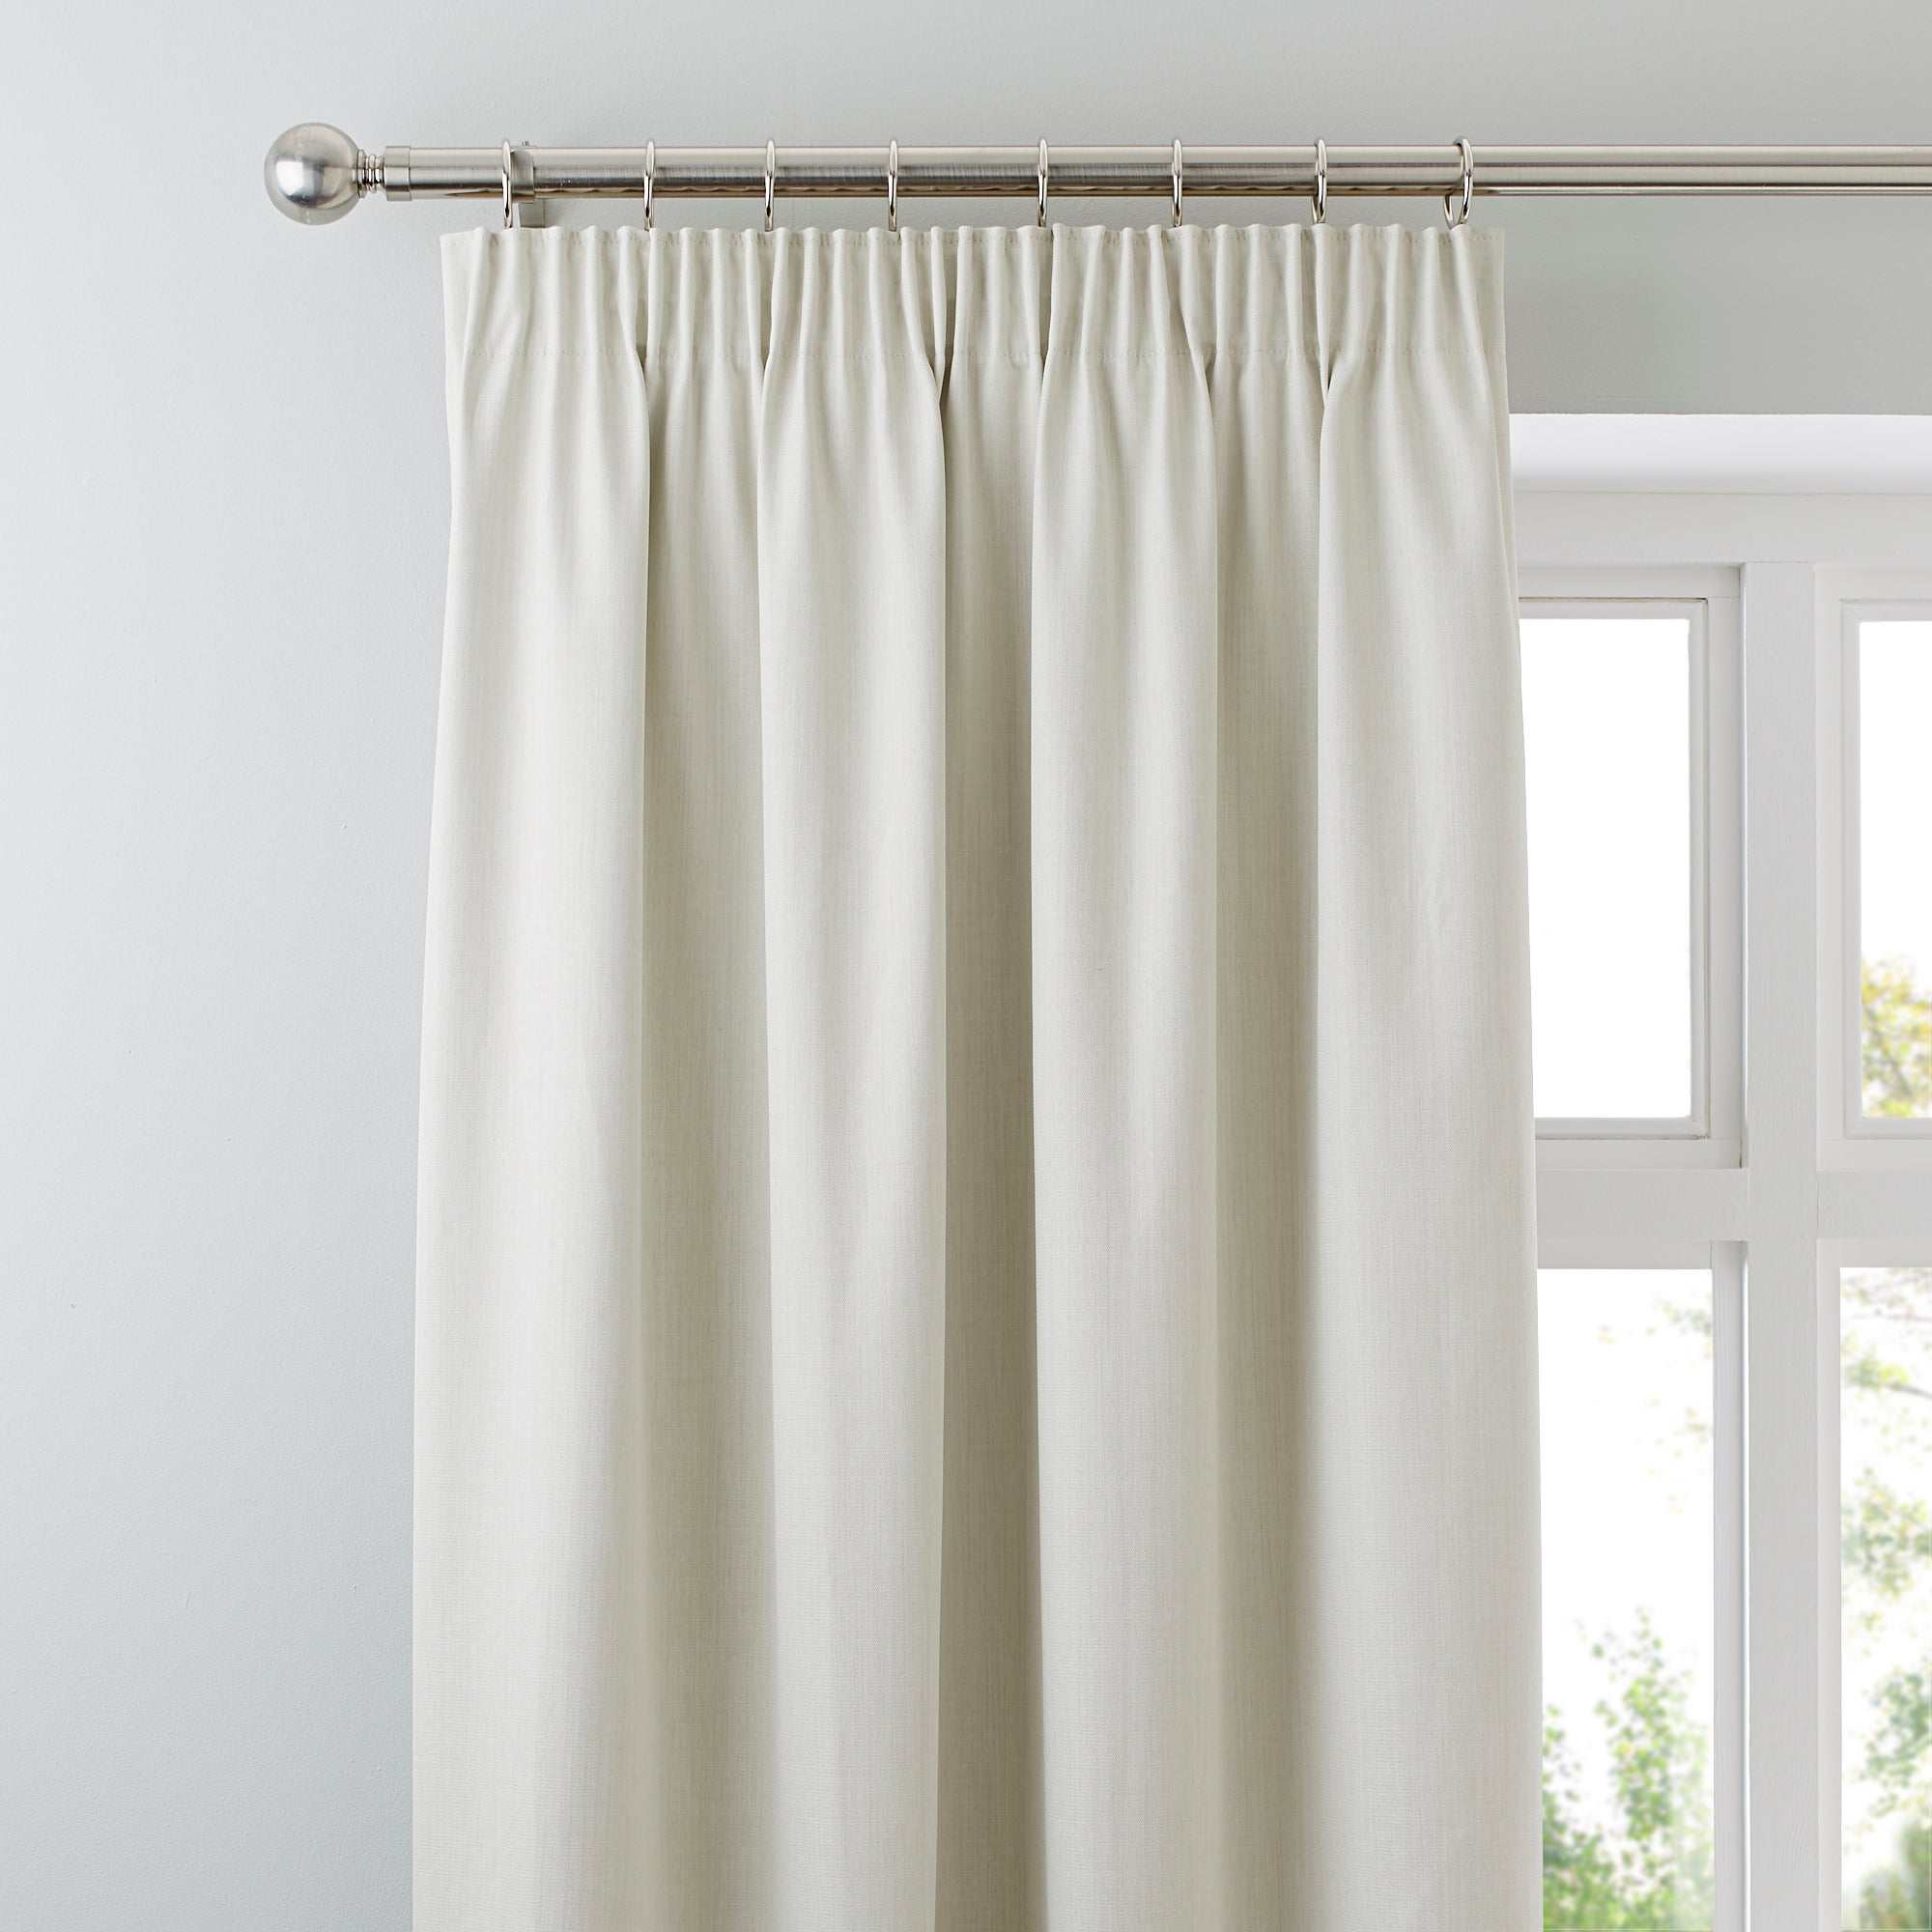 Waters and Noble Natural Solar Blackout Curtains